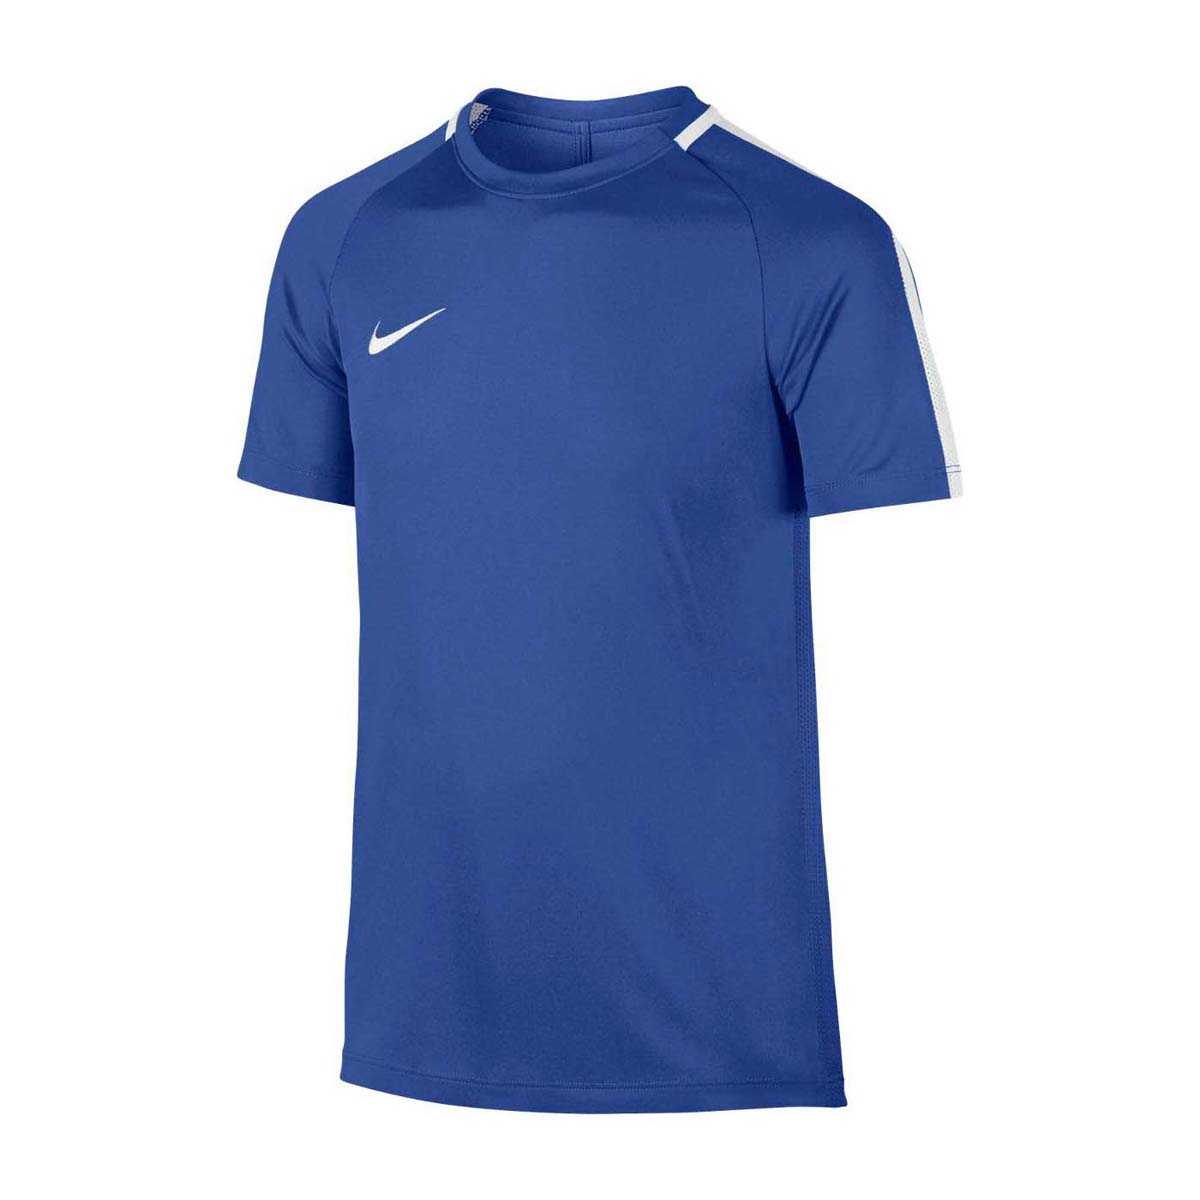 nike dry academy training shirt blue kids 832969 480 uksoccershop. Black Bedroom Furniture Sets. Home Design Ideas